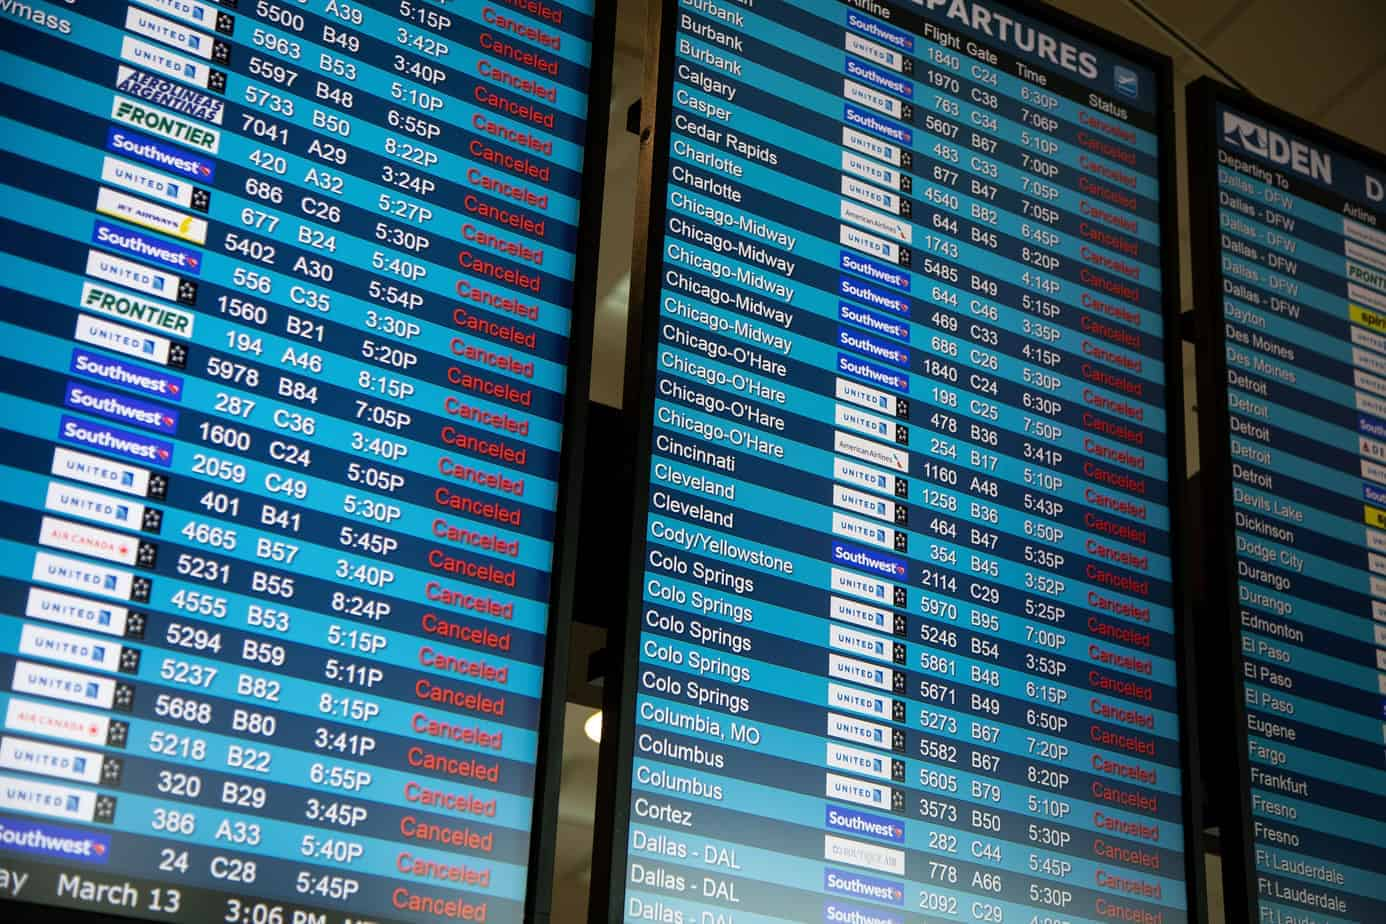 Airport display board showing all cancelled flights